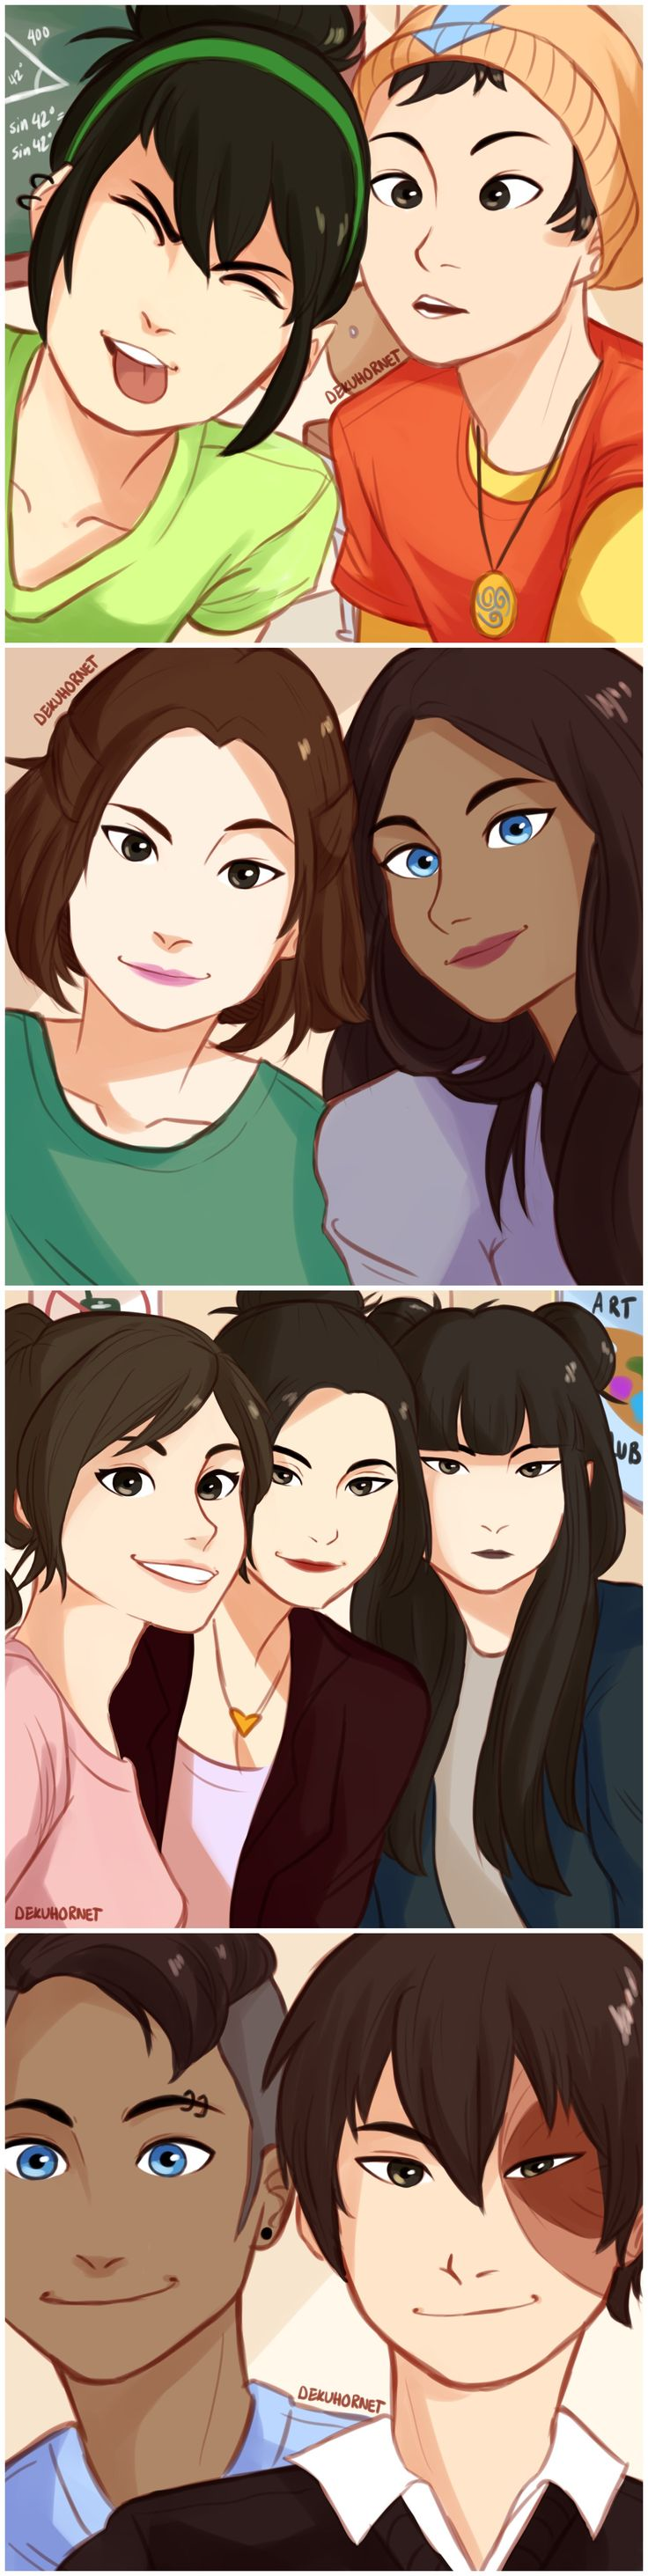 some modern au selfies at school